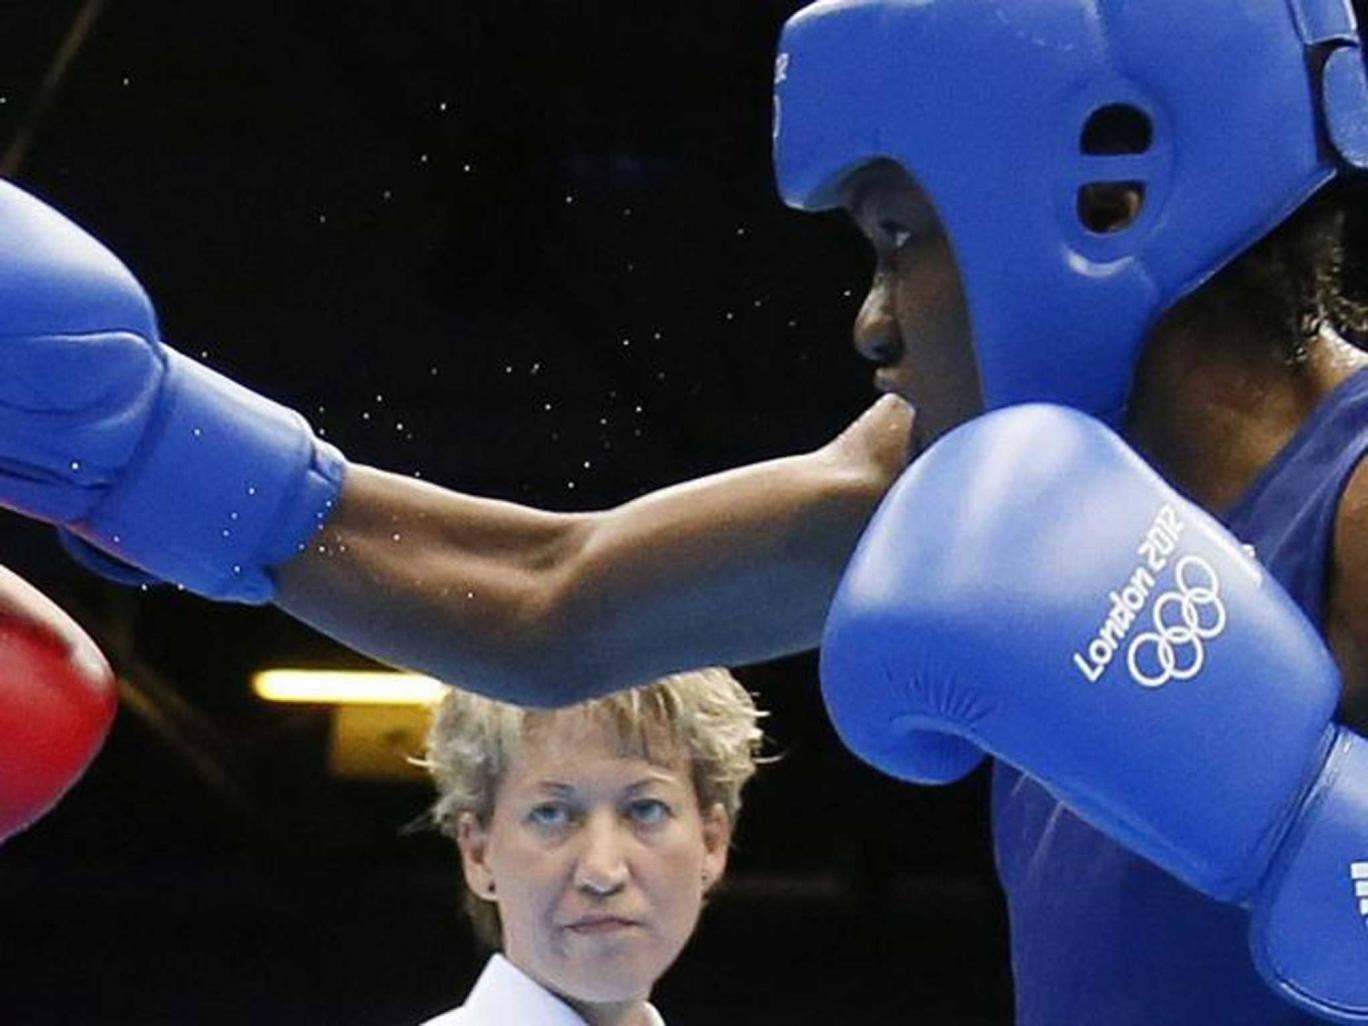 Team GB's Nicola Adams on her way to the flyweight gold medal against Cancan Ren of China during London 2012